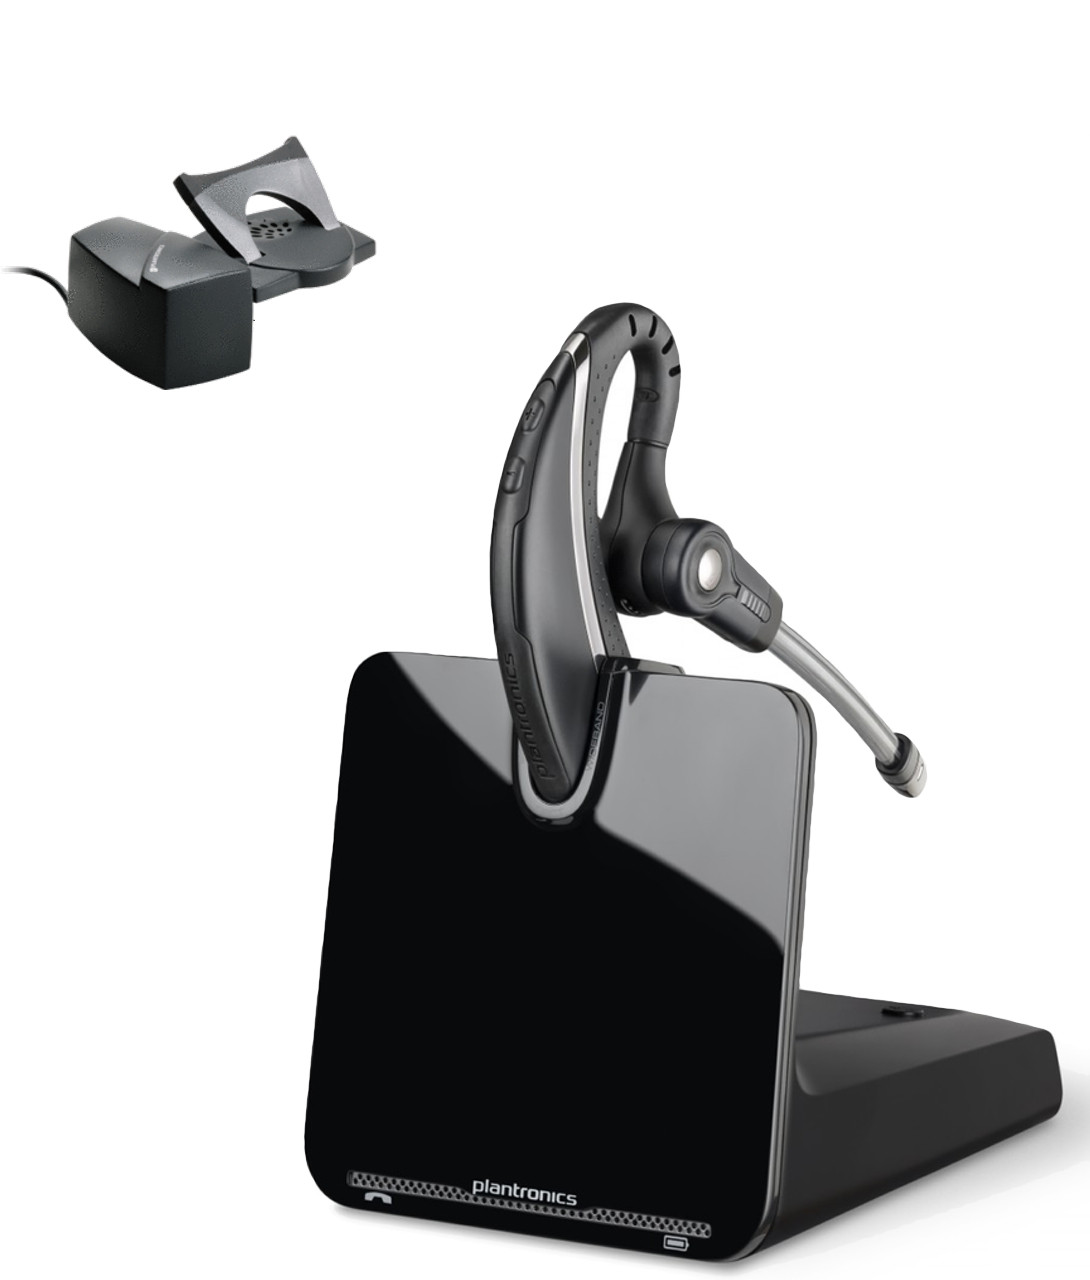 52cd5242321d7d Plantronics CS 530 Bundle -Wireless Headset and Lifter, On the Ear ...